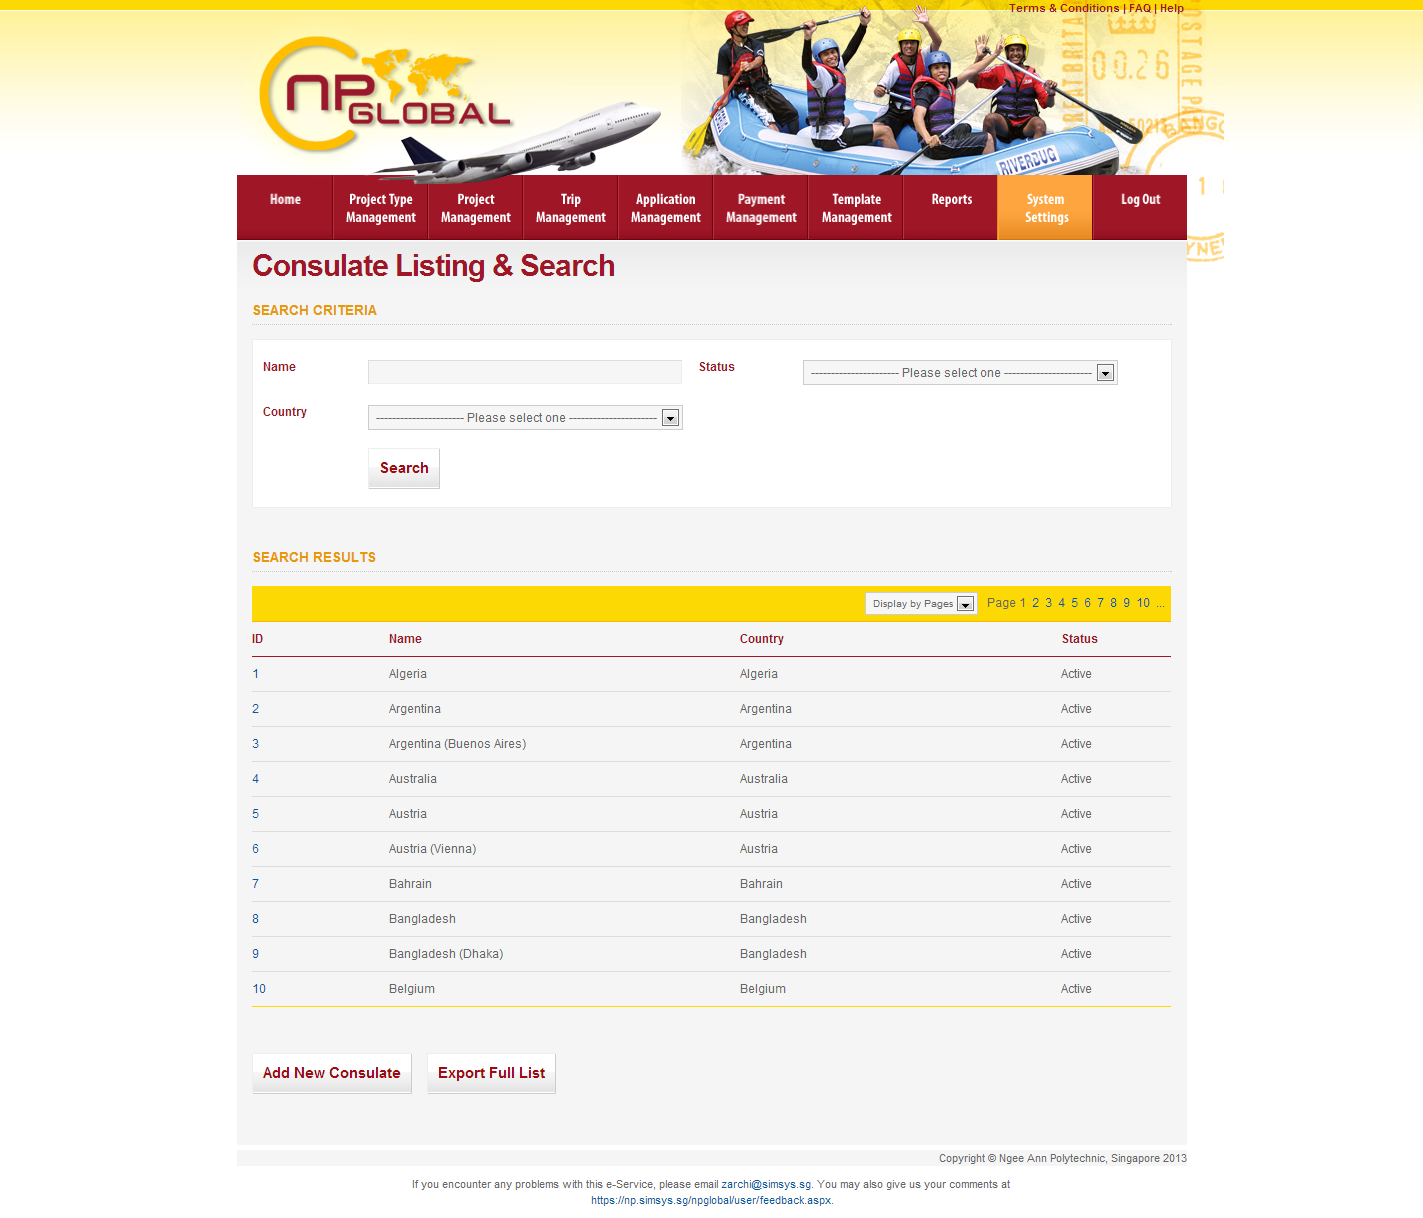 Ngee Ann Polytechnic - Overseas Student Project Portal Image 5